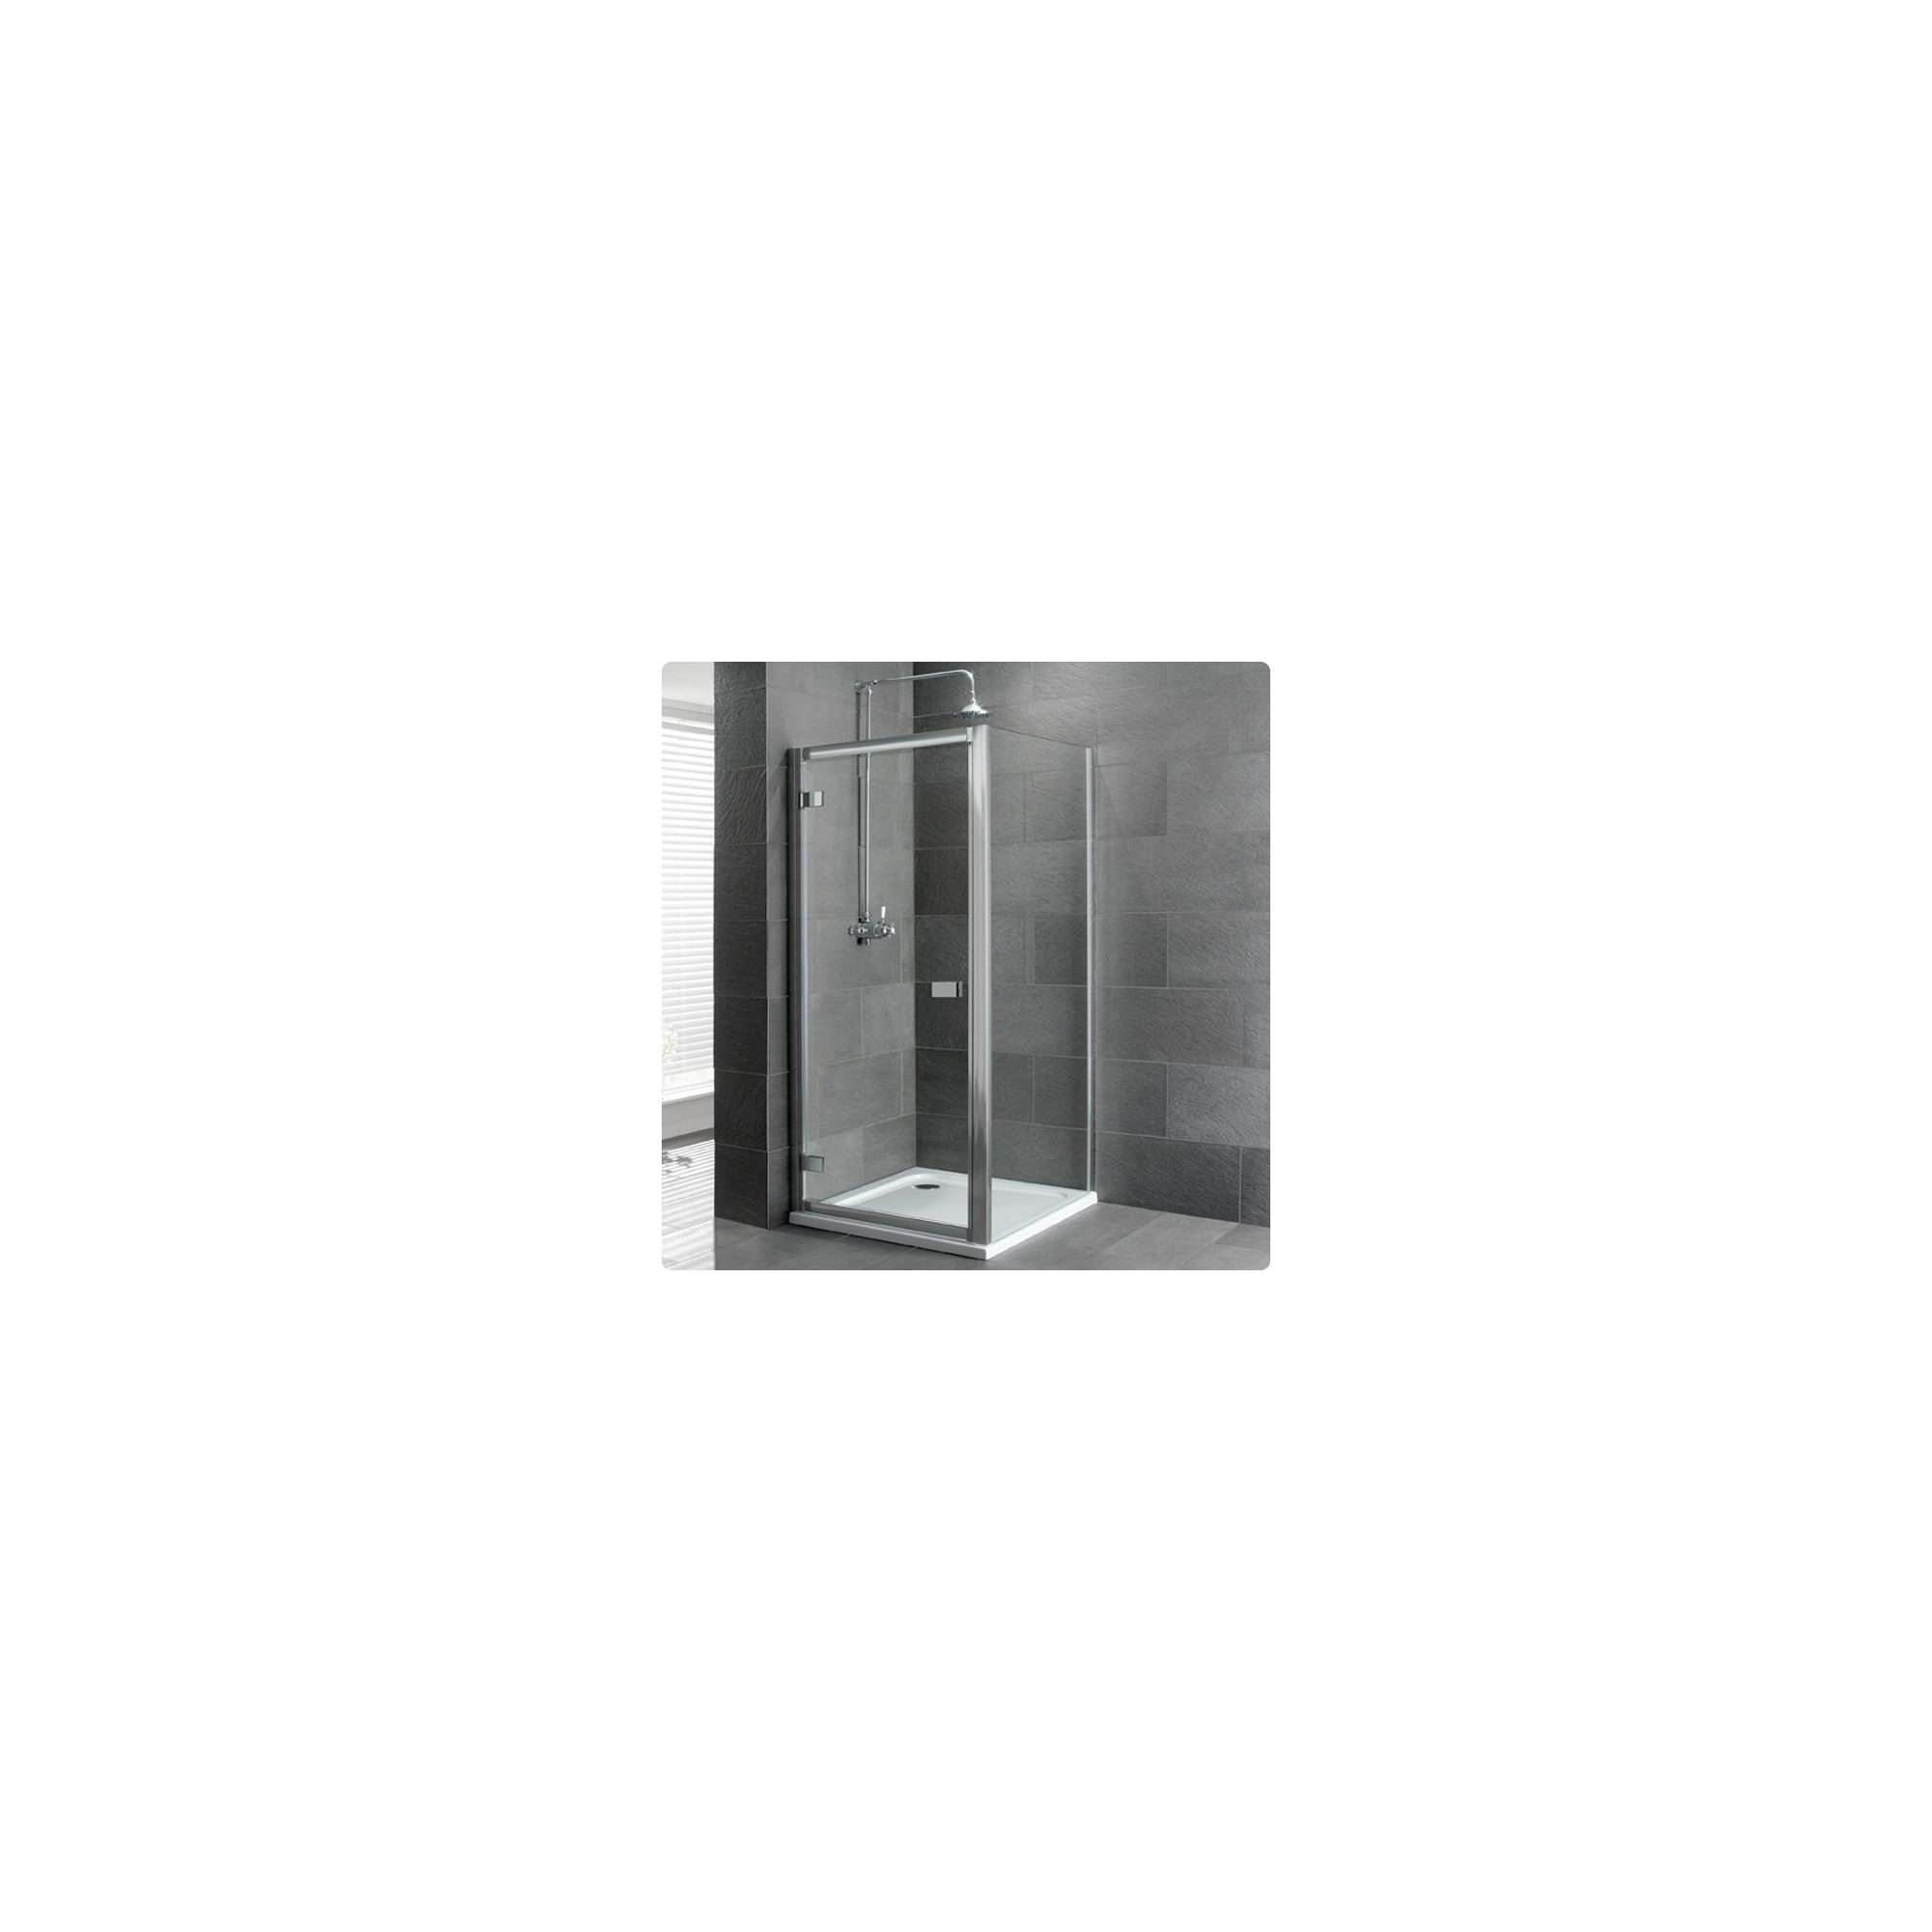 Duchy Select Silver Hinged Door Shower Enclosure, 900mm x 900mm, Standard Tray, 6mm Glass at Tesco Direct